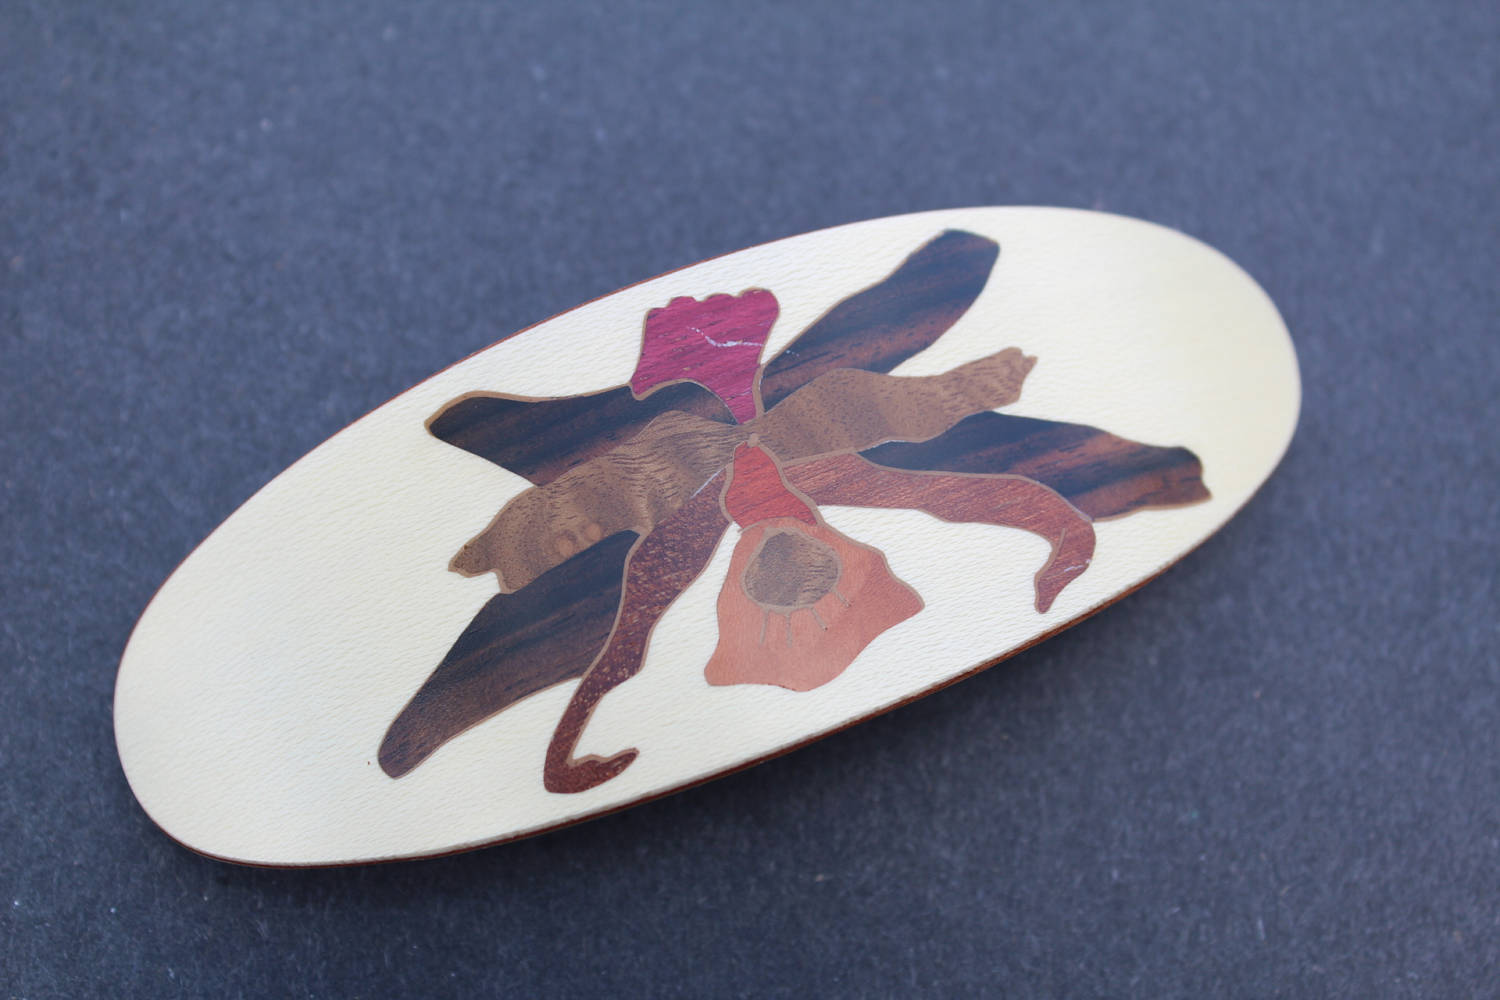 Flower Hair Clip, Hair Barrette, Wood Hair Clip Barrette, Luxury Hair Accessories,French Barrette, Hawaii Flower Wood Handmade in USA